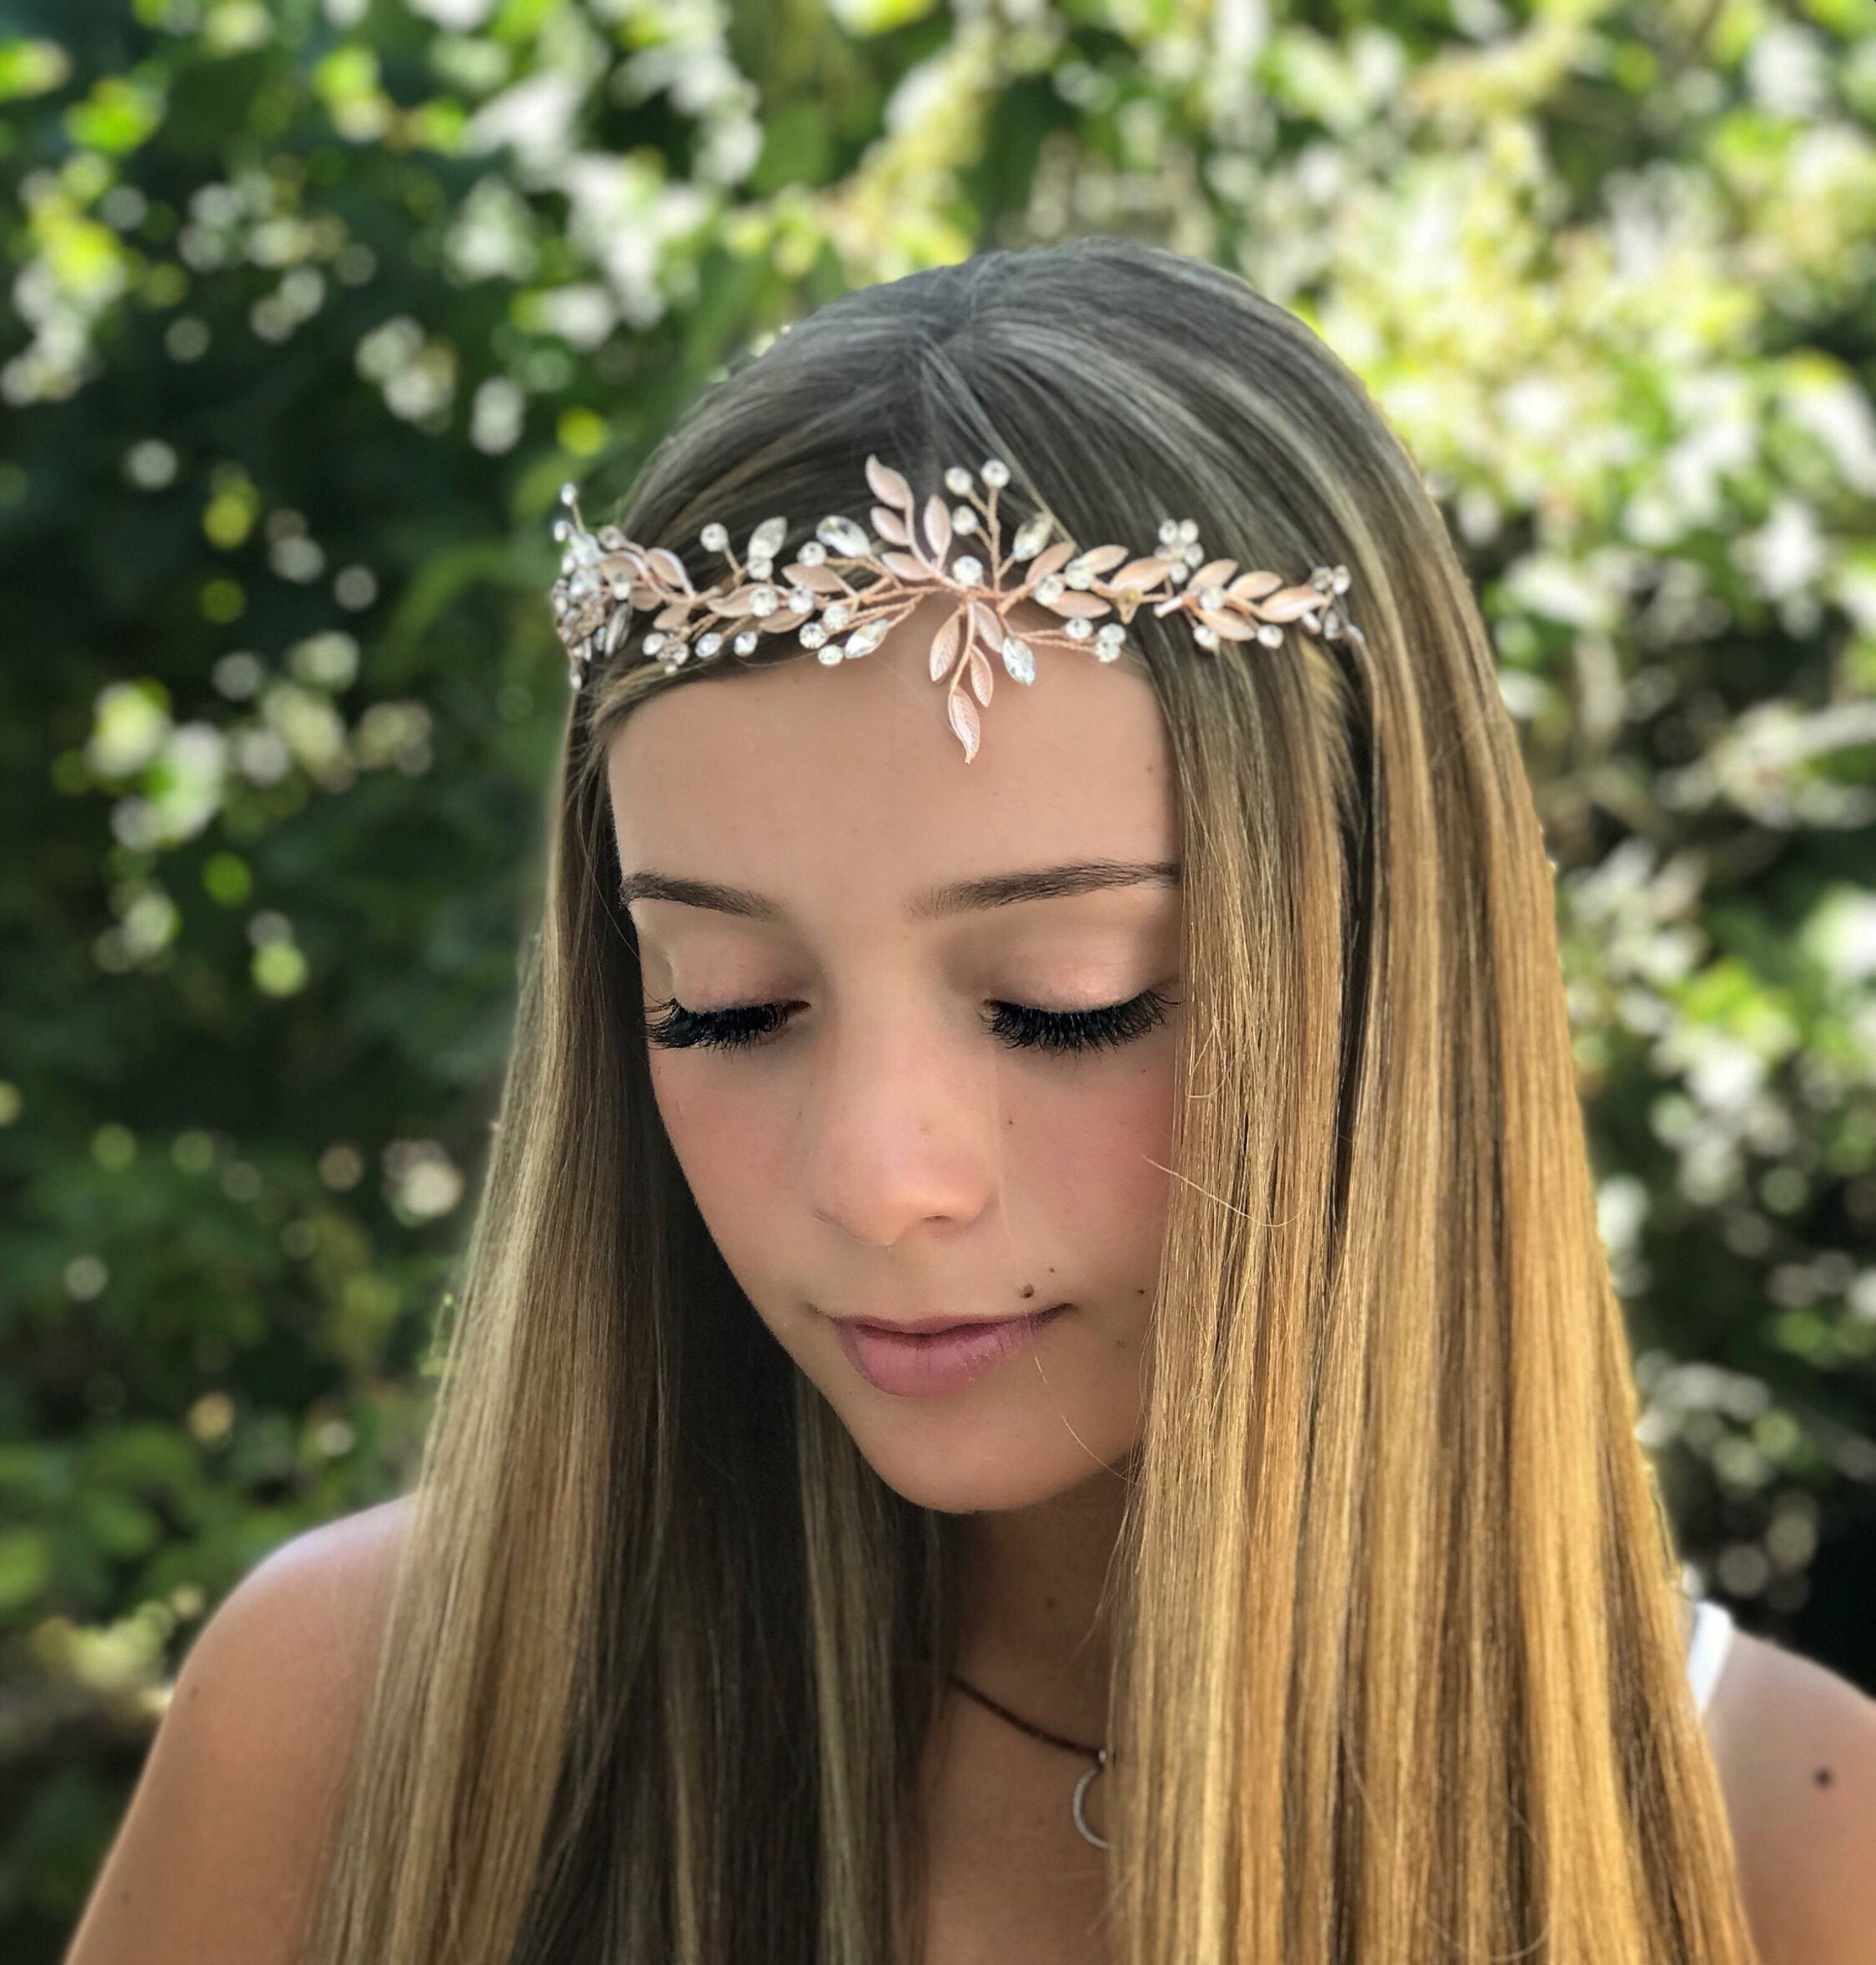 Rose Gold Hair Accessory For Your Flower Girl Bridal Hair Vine With Leaves And Rhinestones